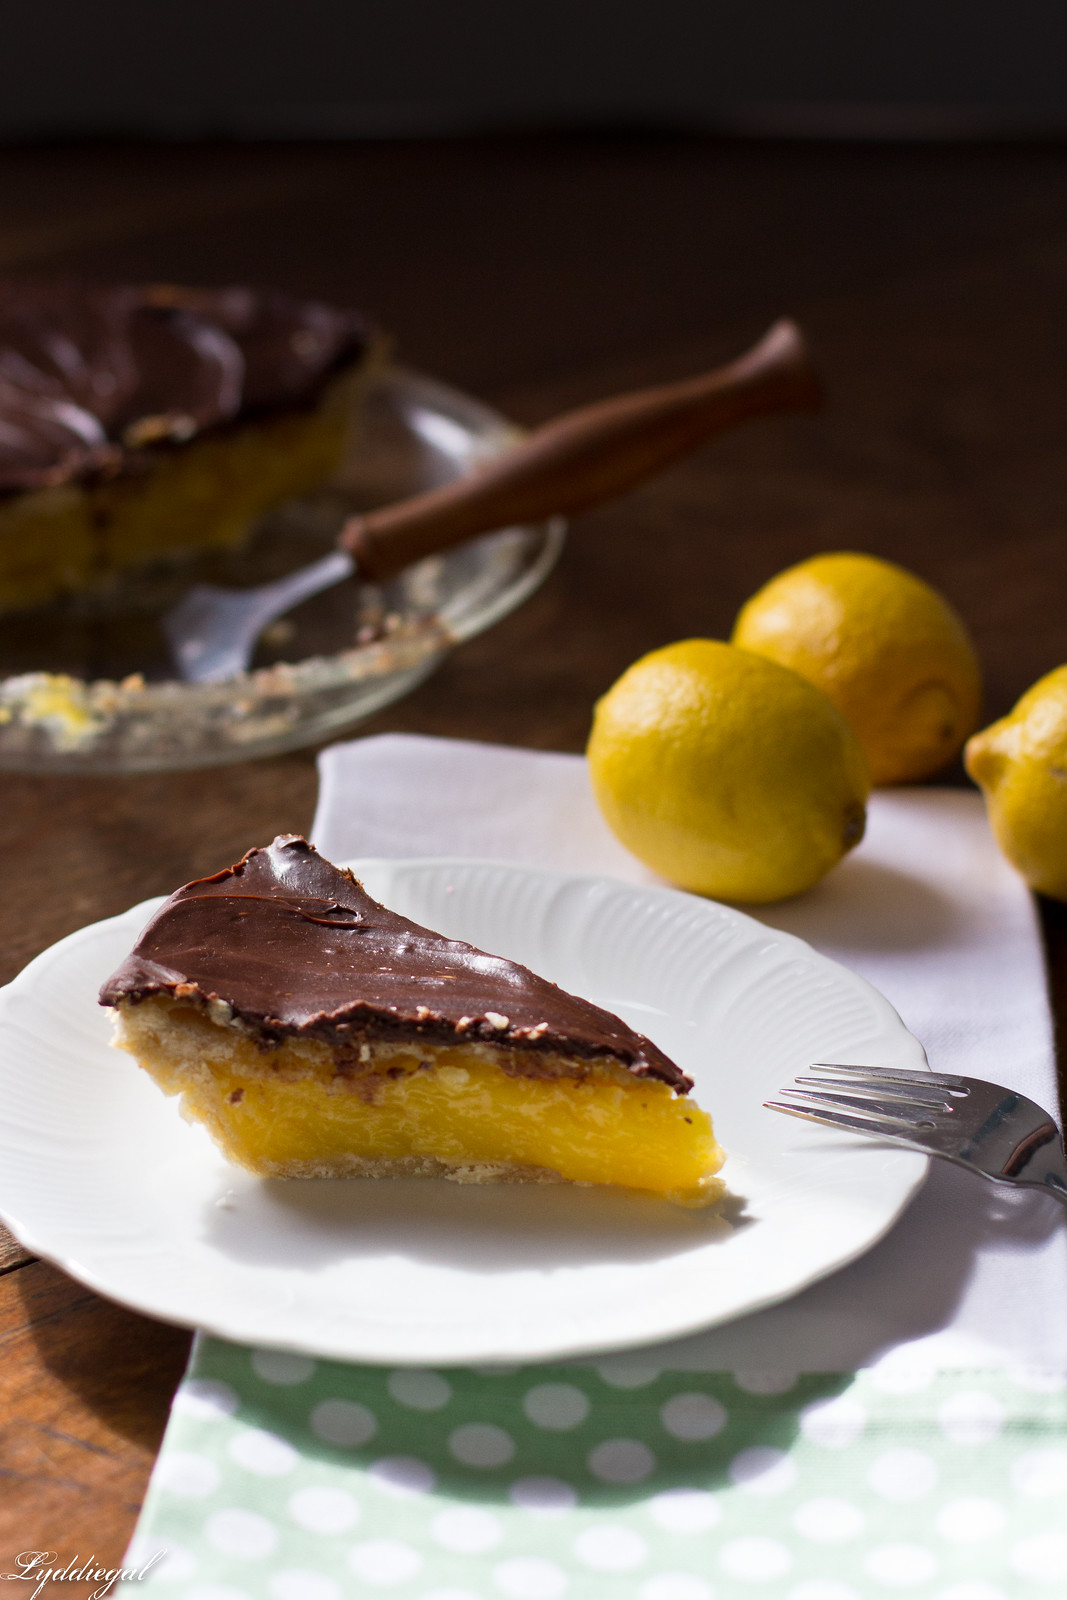 Chocolate Lemon Pie Recipe-12.jpg